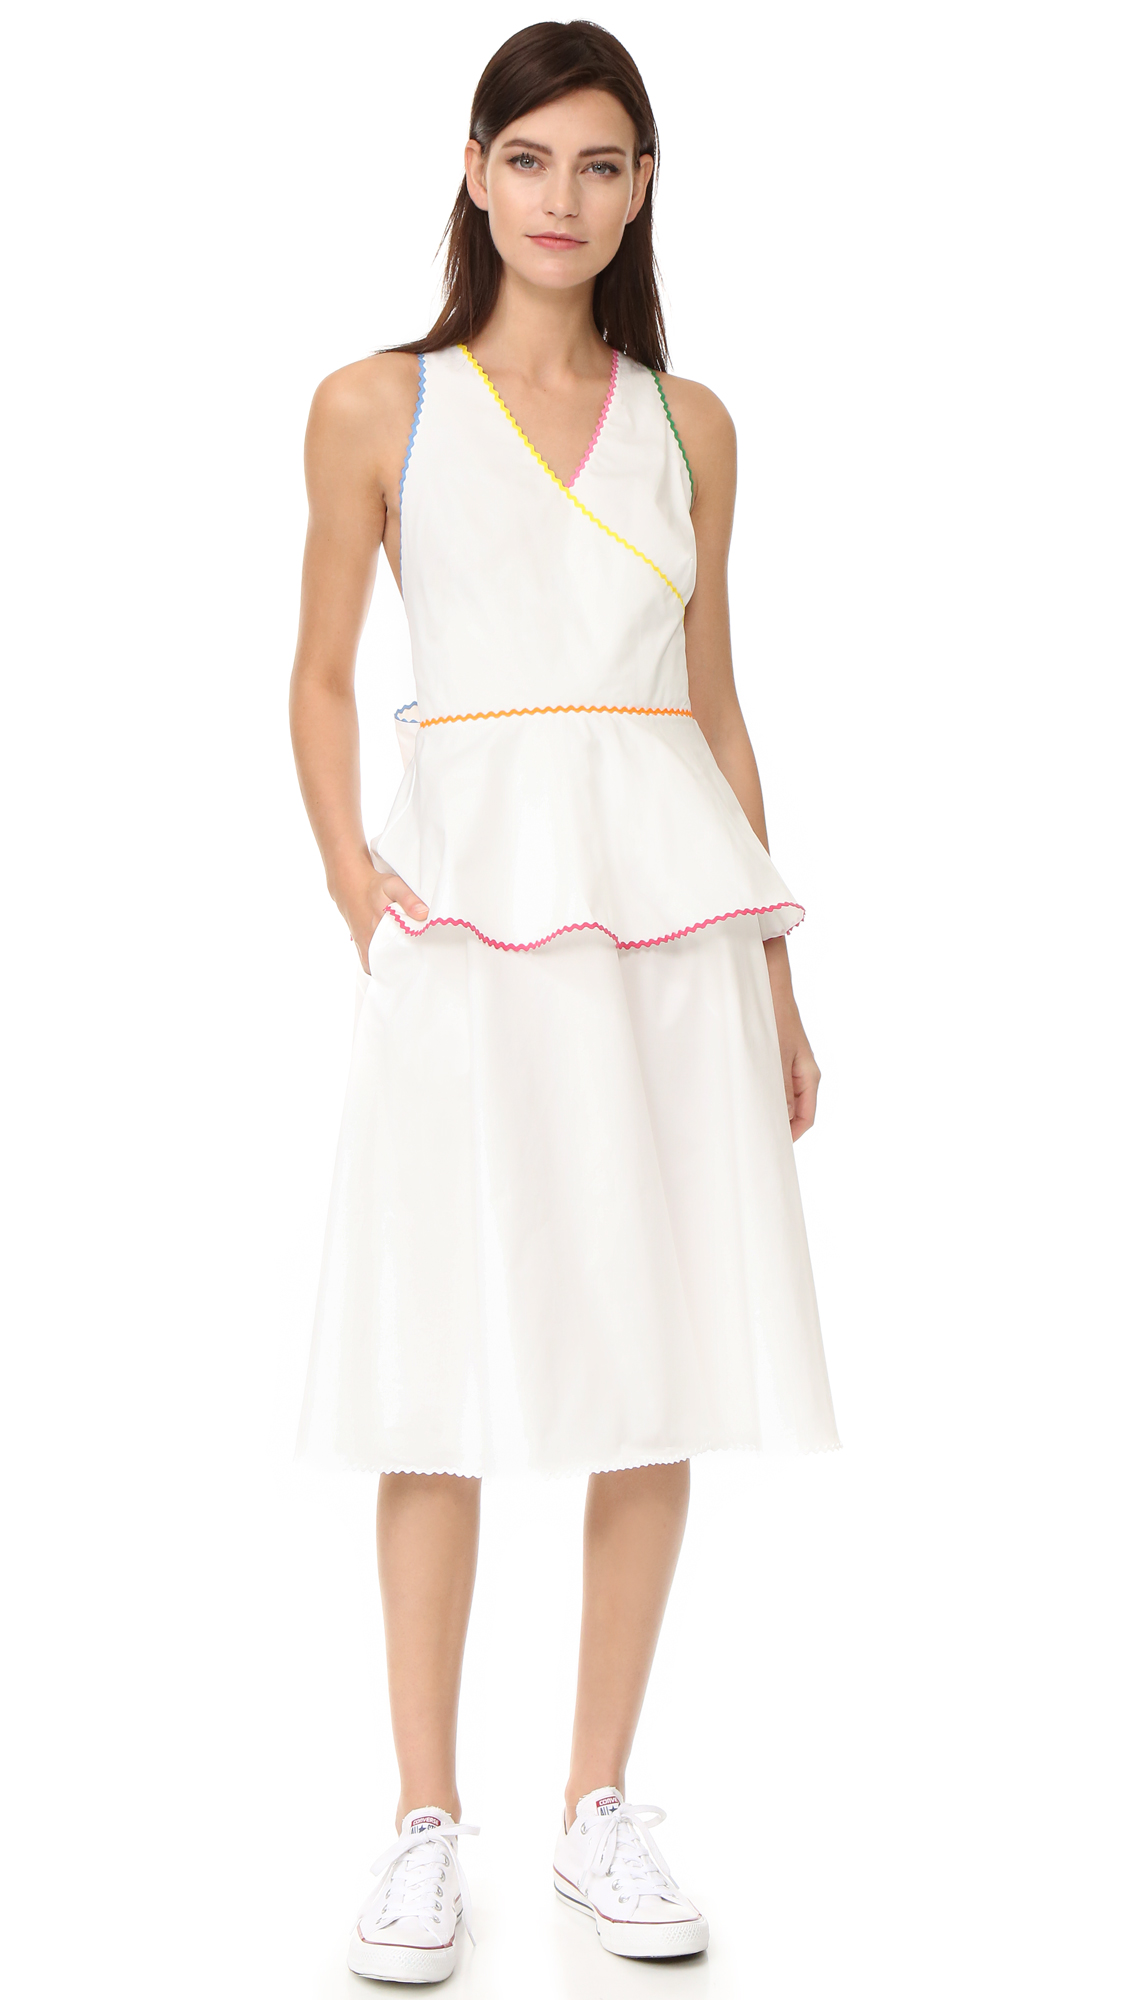 Anna October Sleeveless Dress - White